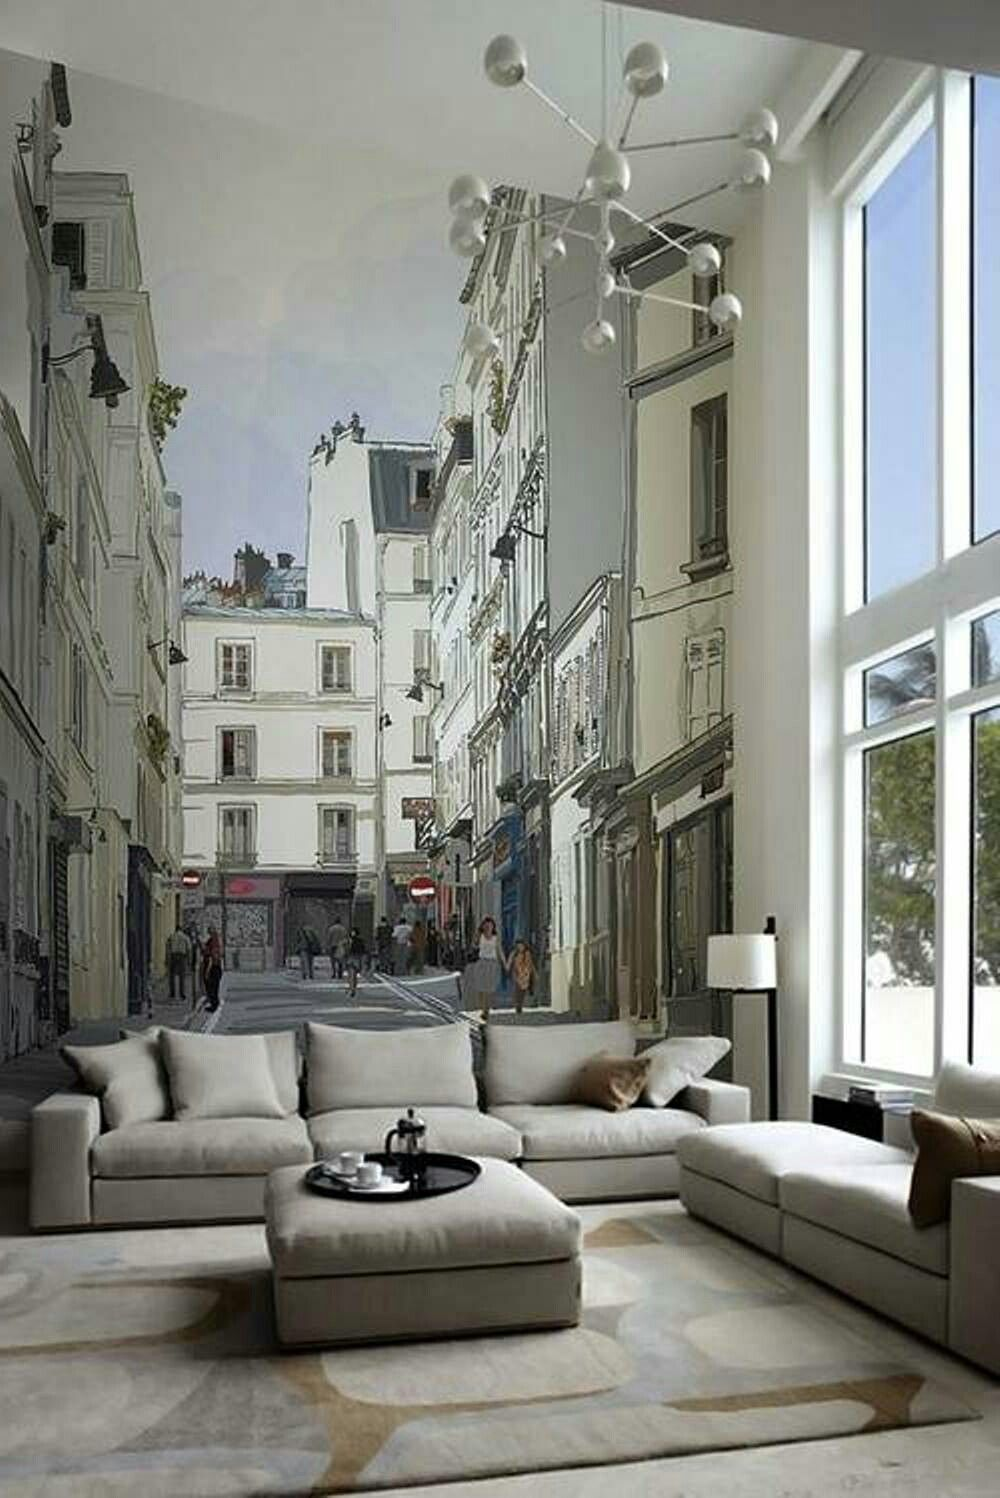 Wall Mural Ideas For Living Room A Different Take On Bringing The Outside In Decorating